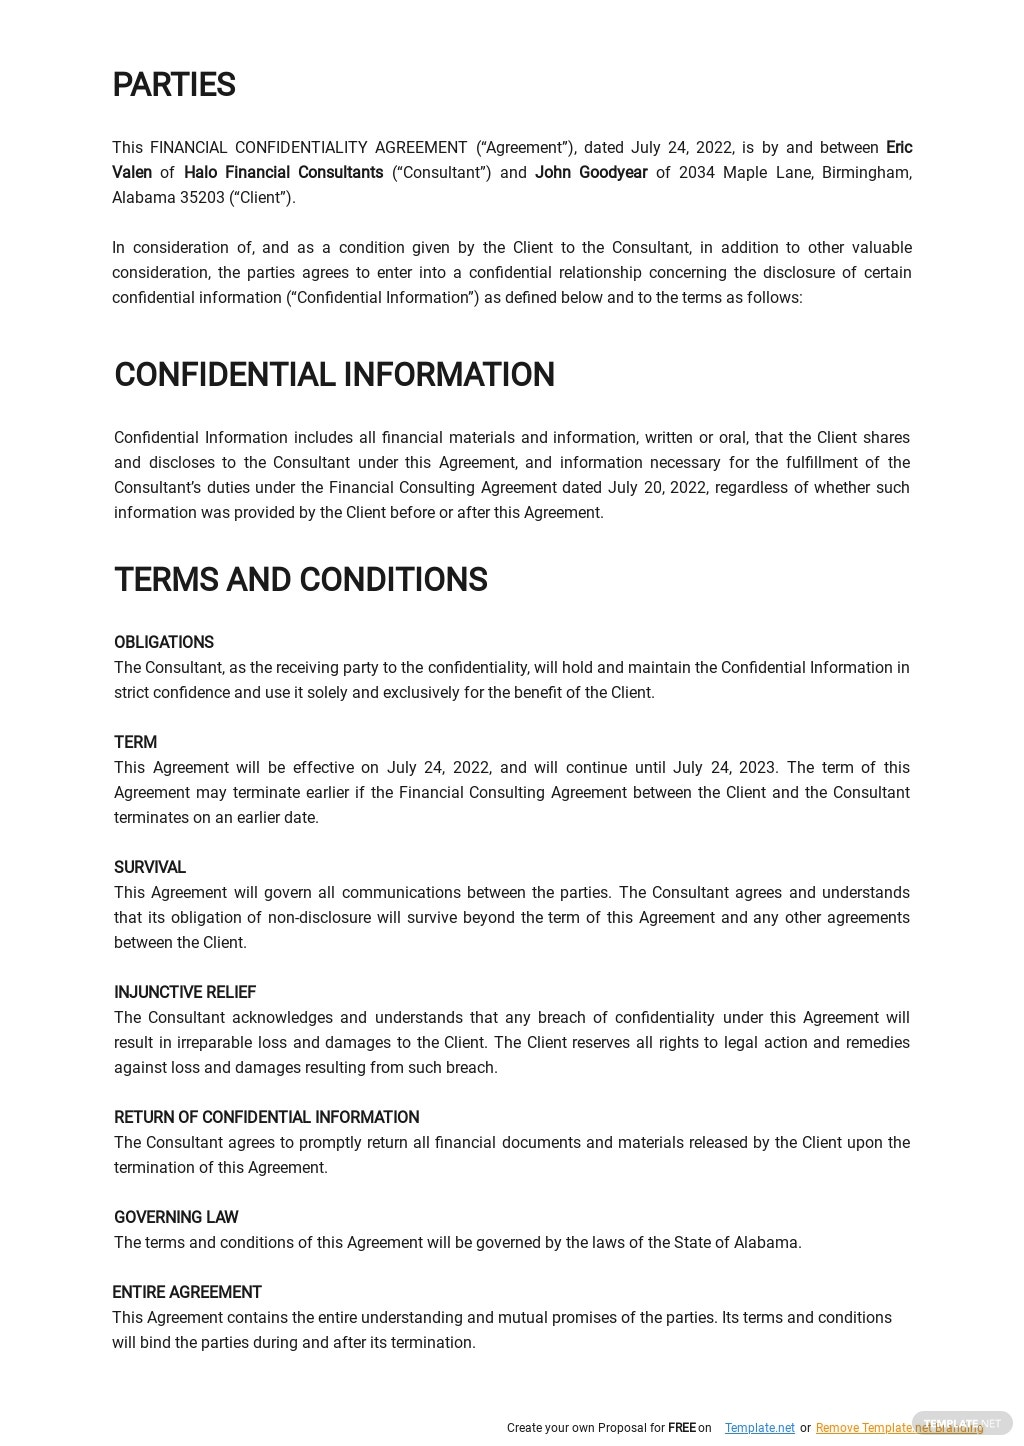 Financial Confidentiality Agreement Template 1.jpe